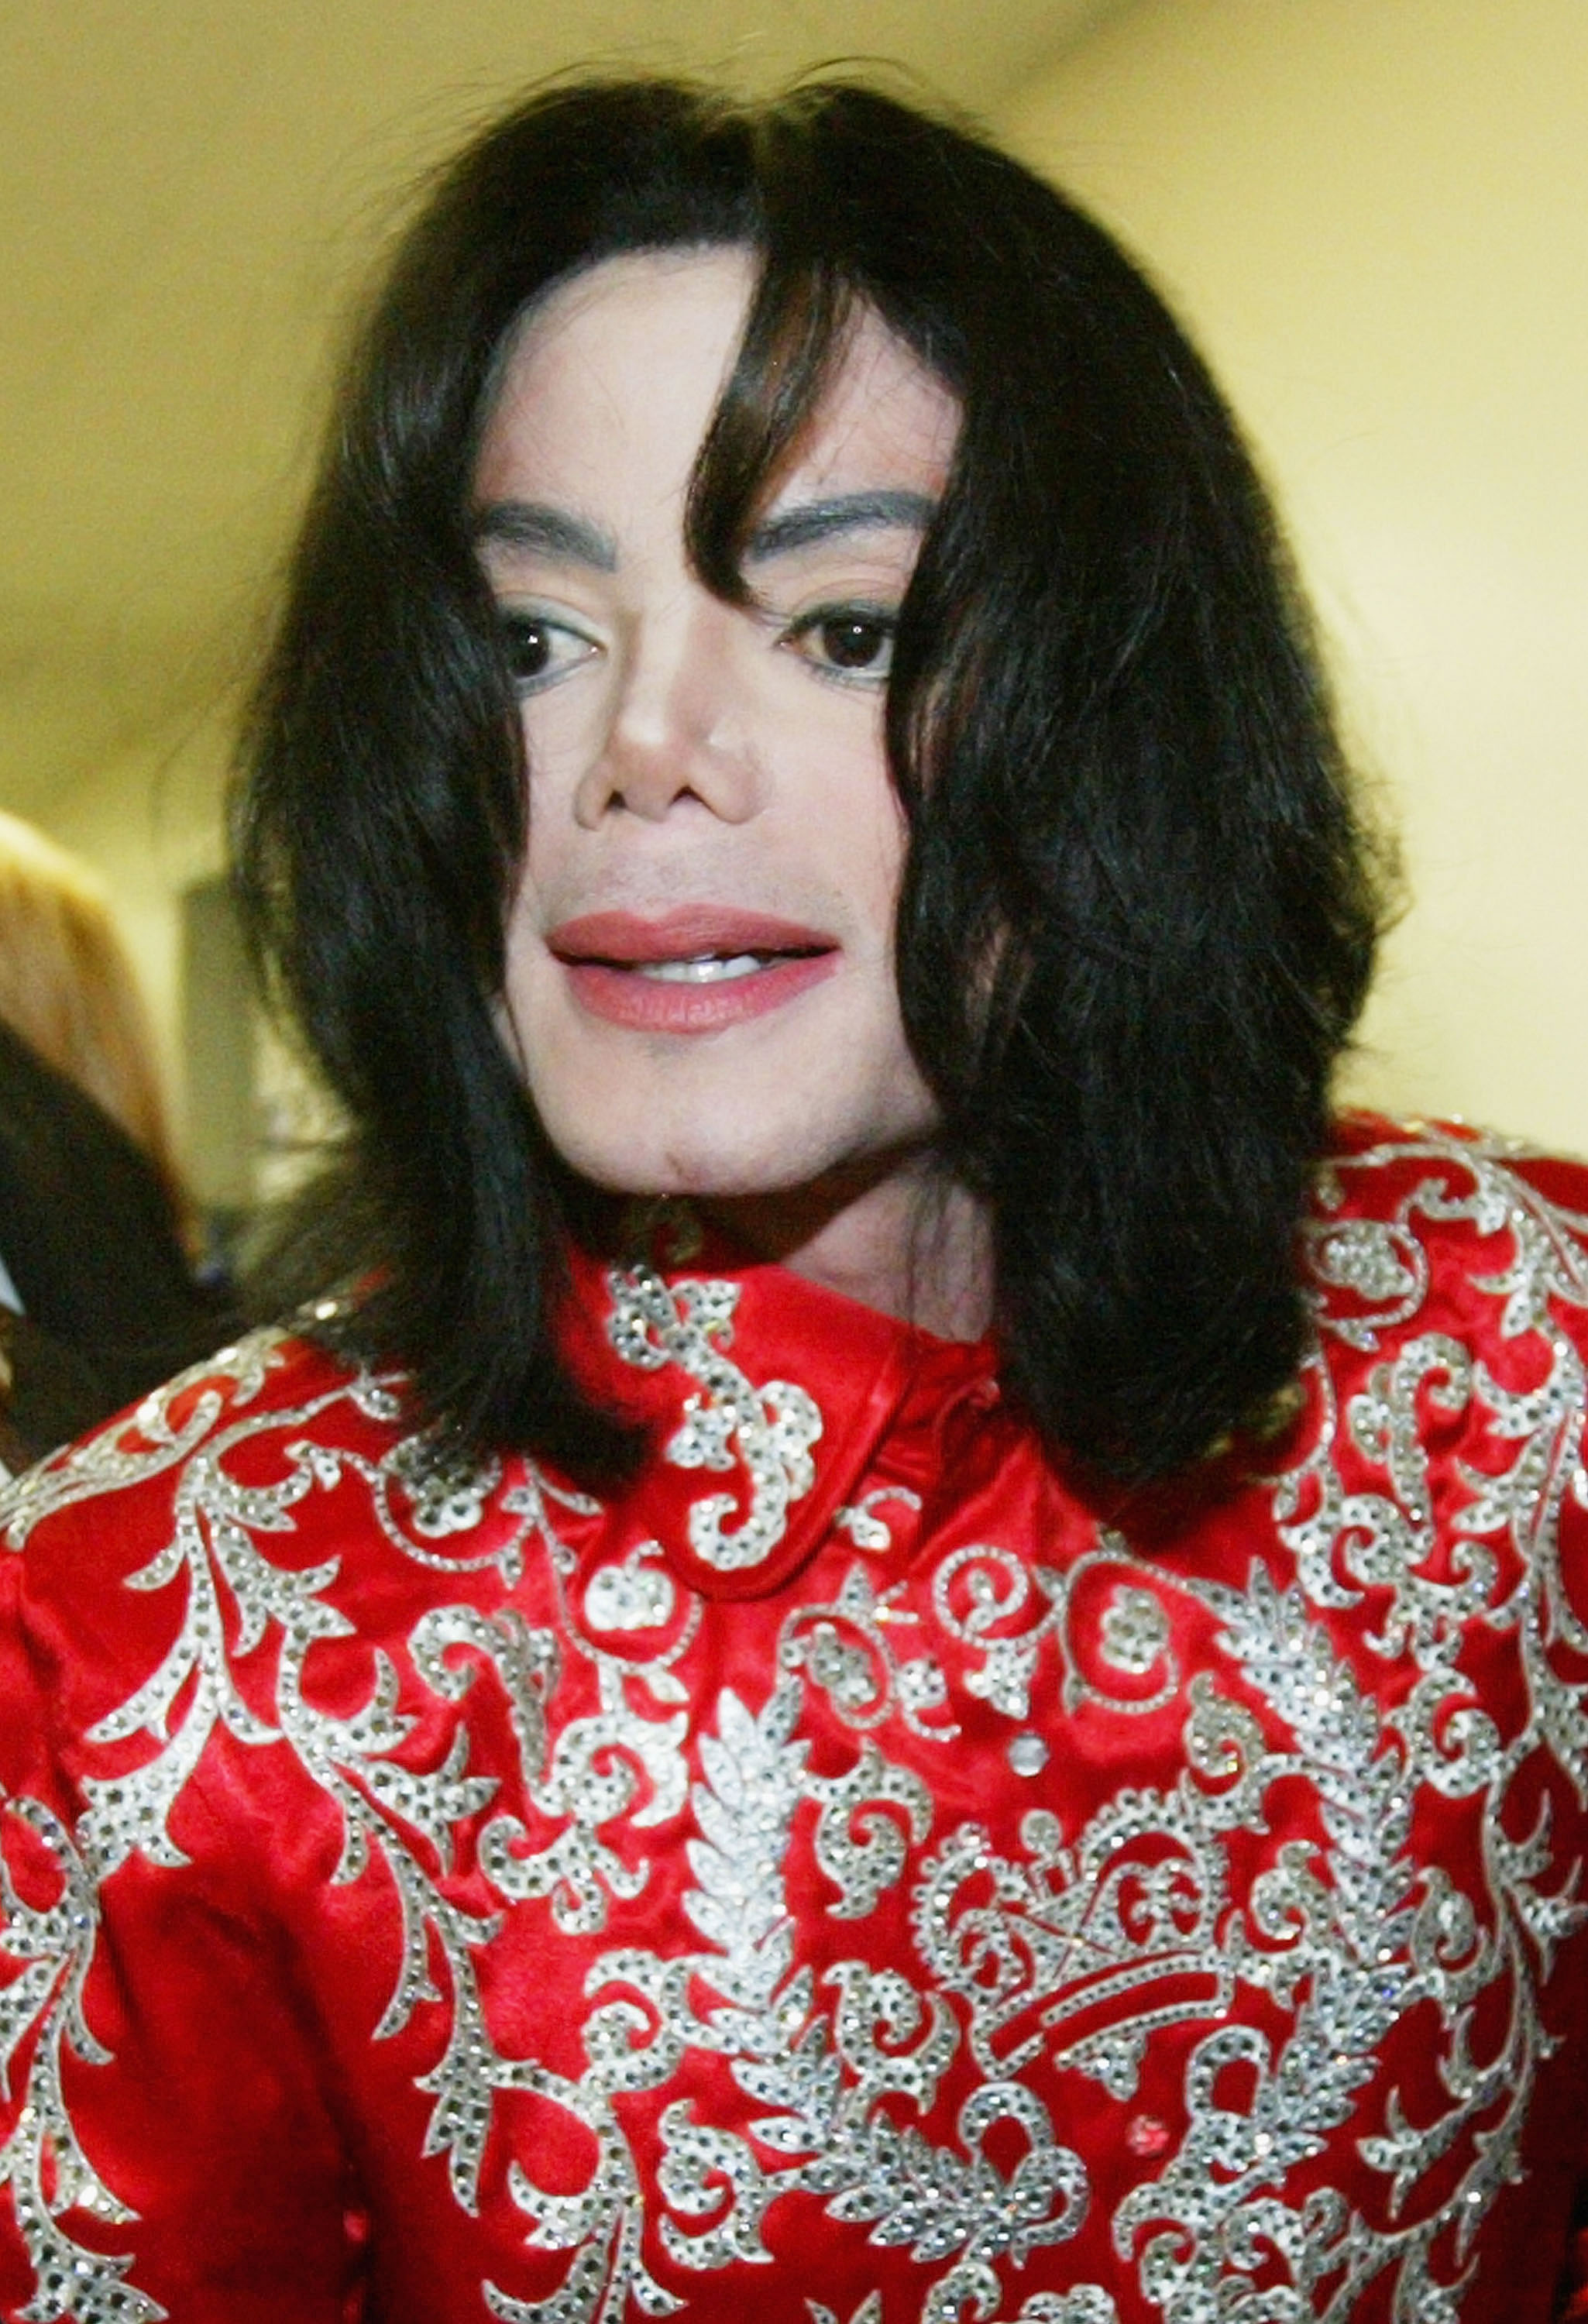 Michael Jackson accused by James Safechuck and Wade Robson (Source: Getty Images)